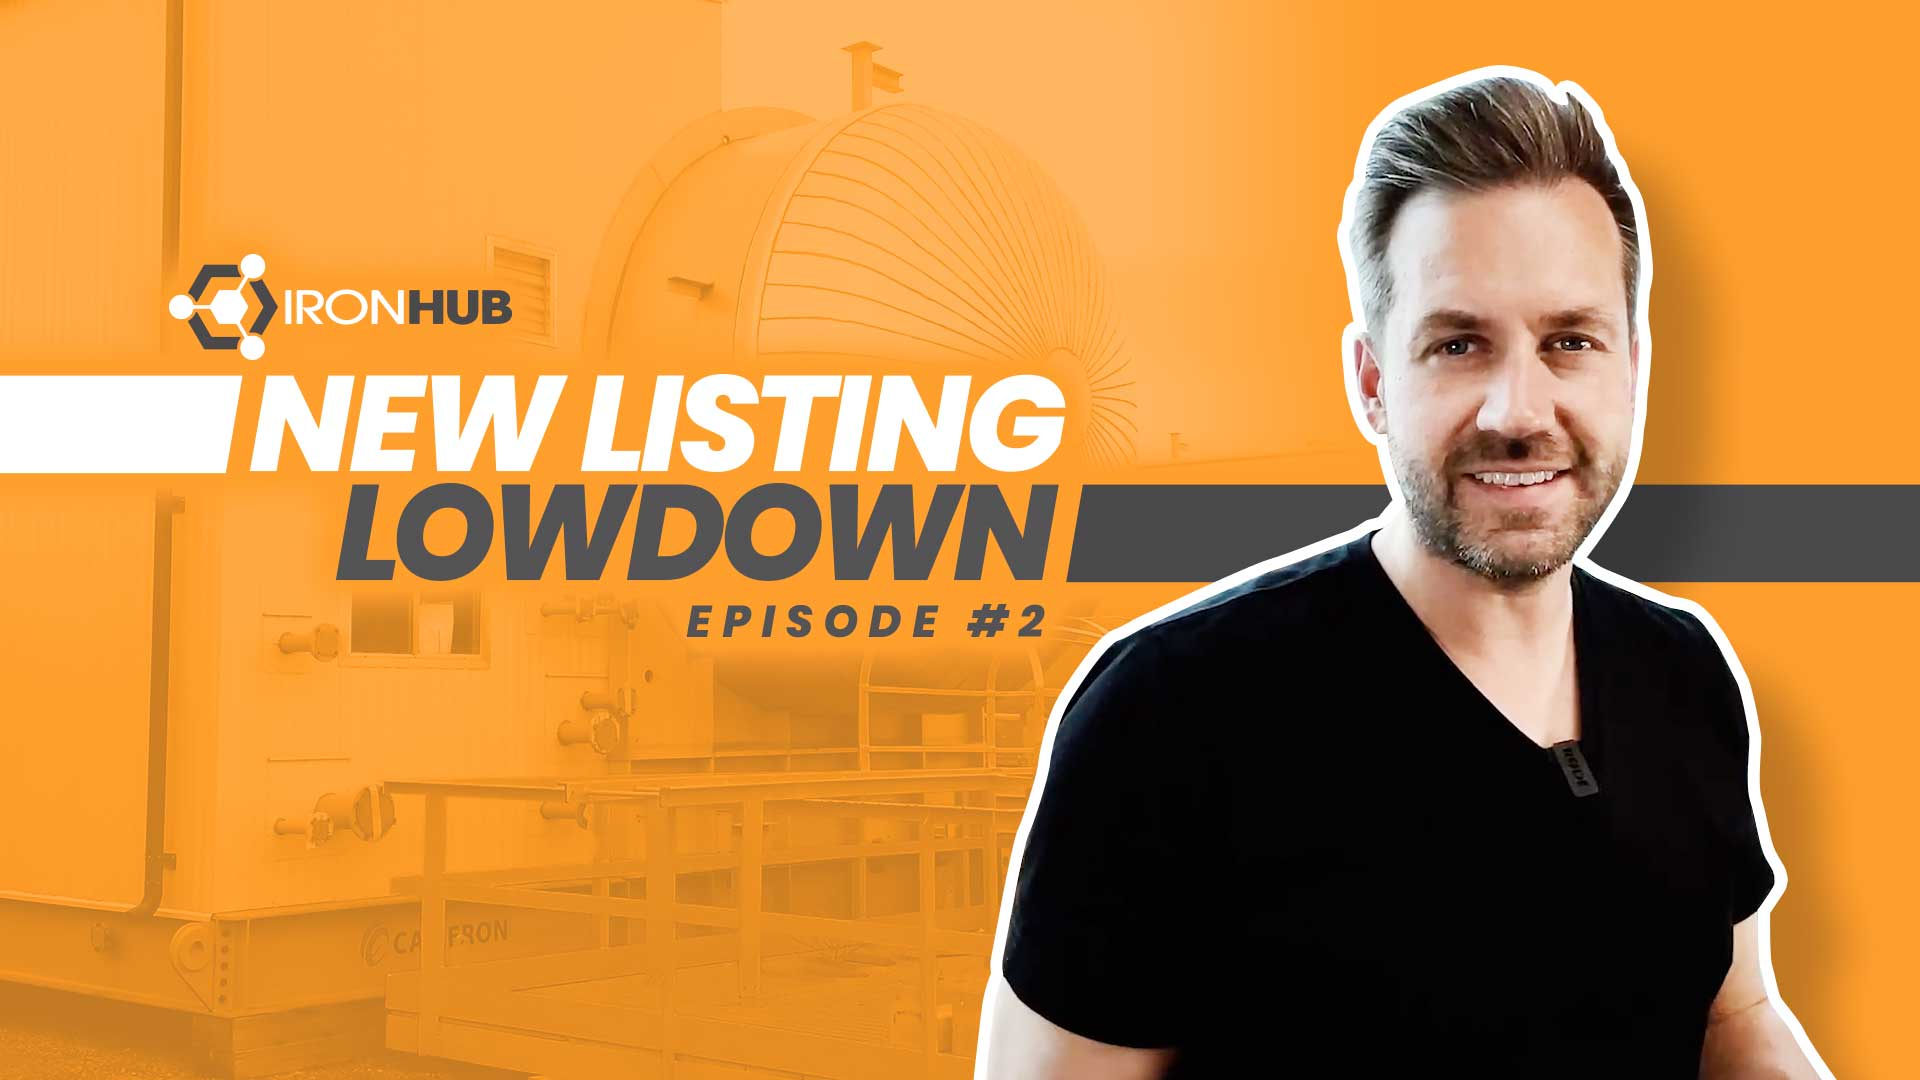 """Episode #2 Now Out! """"New Listing Lowdown"""" Used Surplus Oilfield Oil & Gas Energy Equipment Collaboration with The IronHub"""